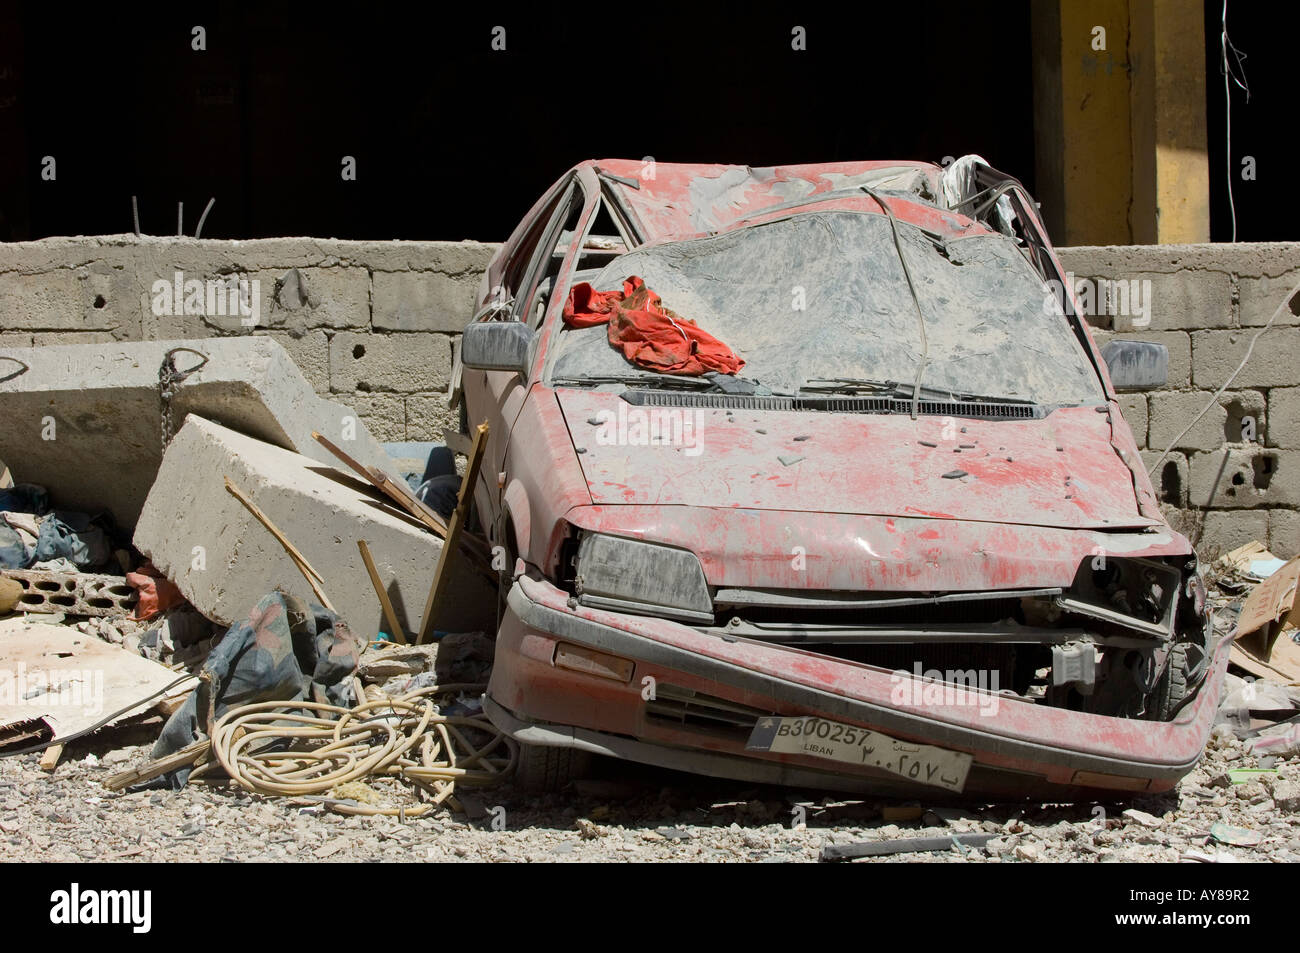 Destruction in war zone Beirut Lebanon Middle East - Stock Image